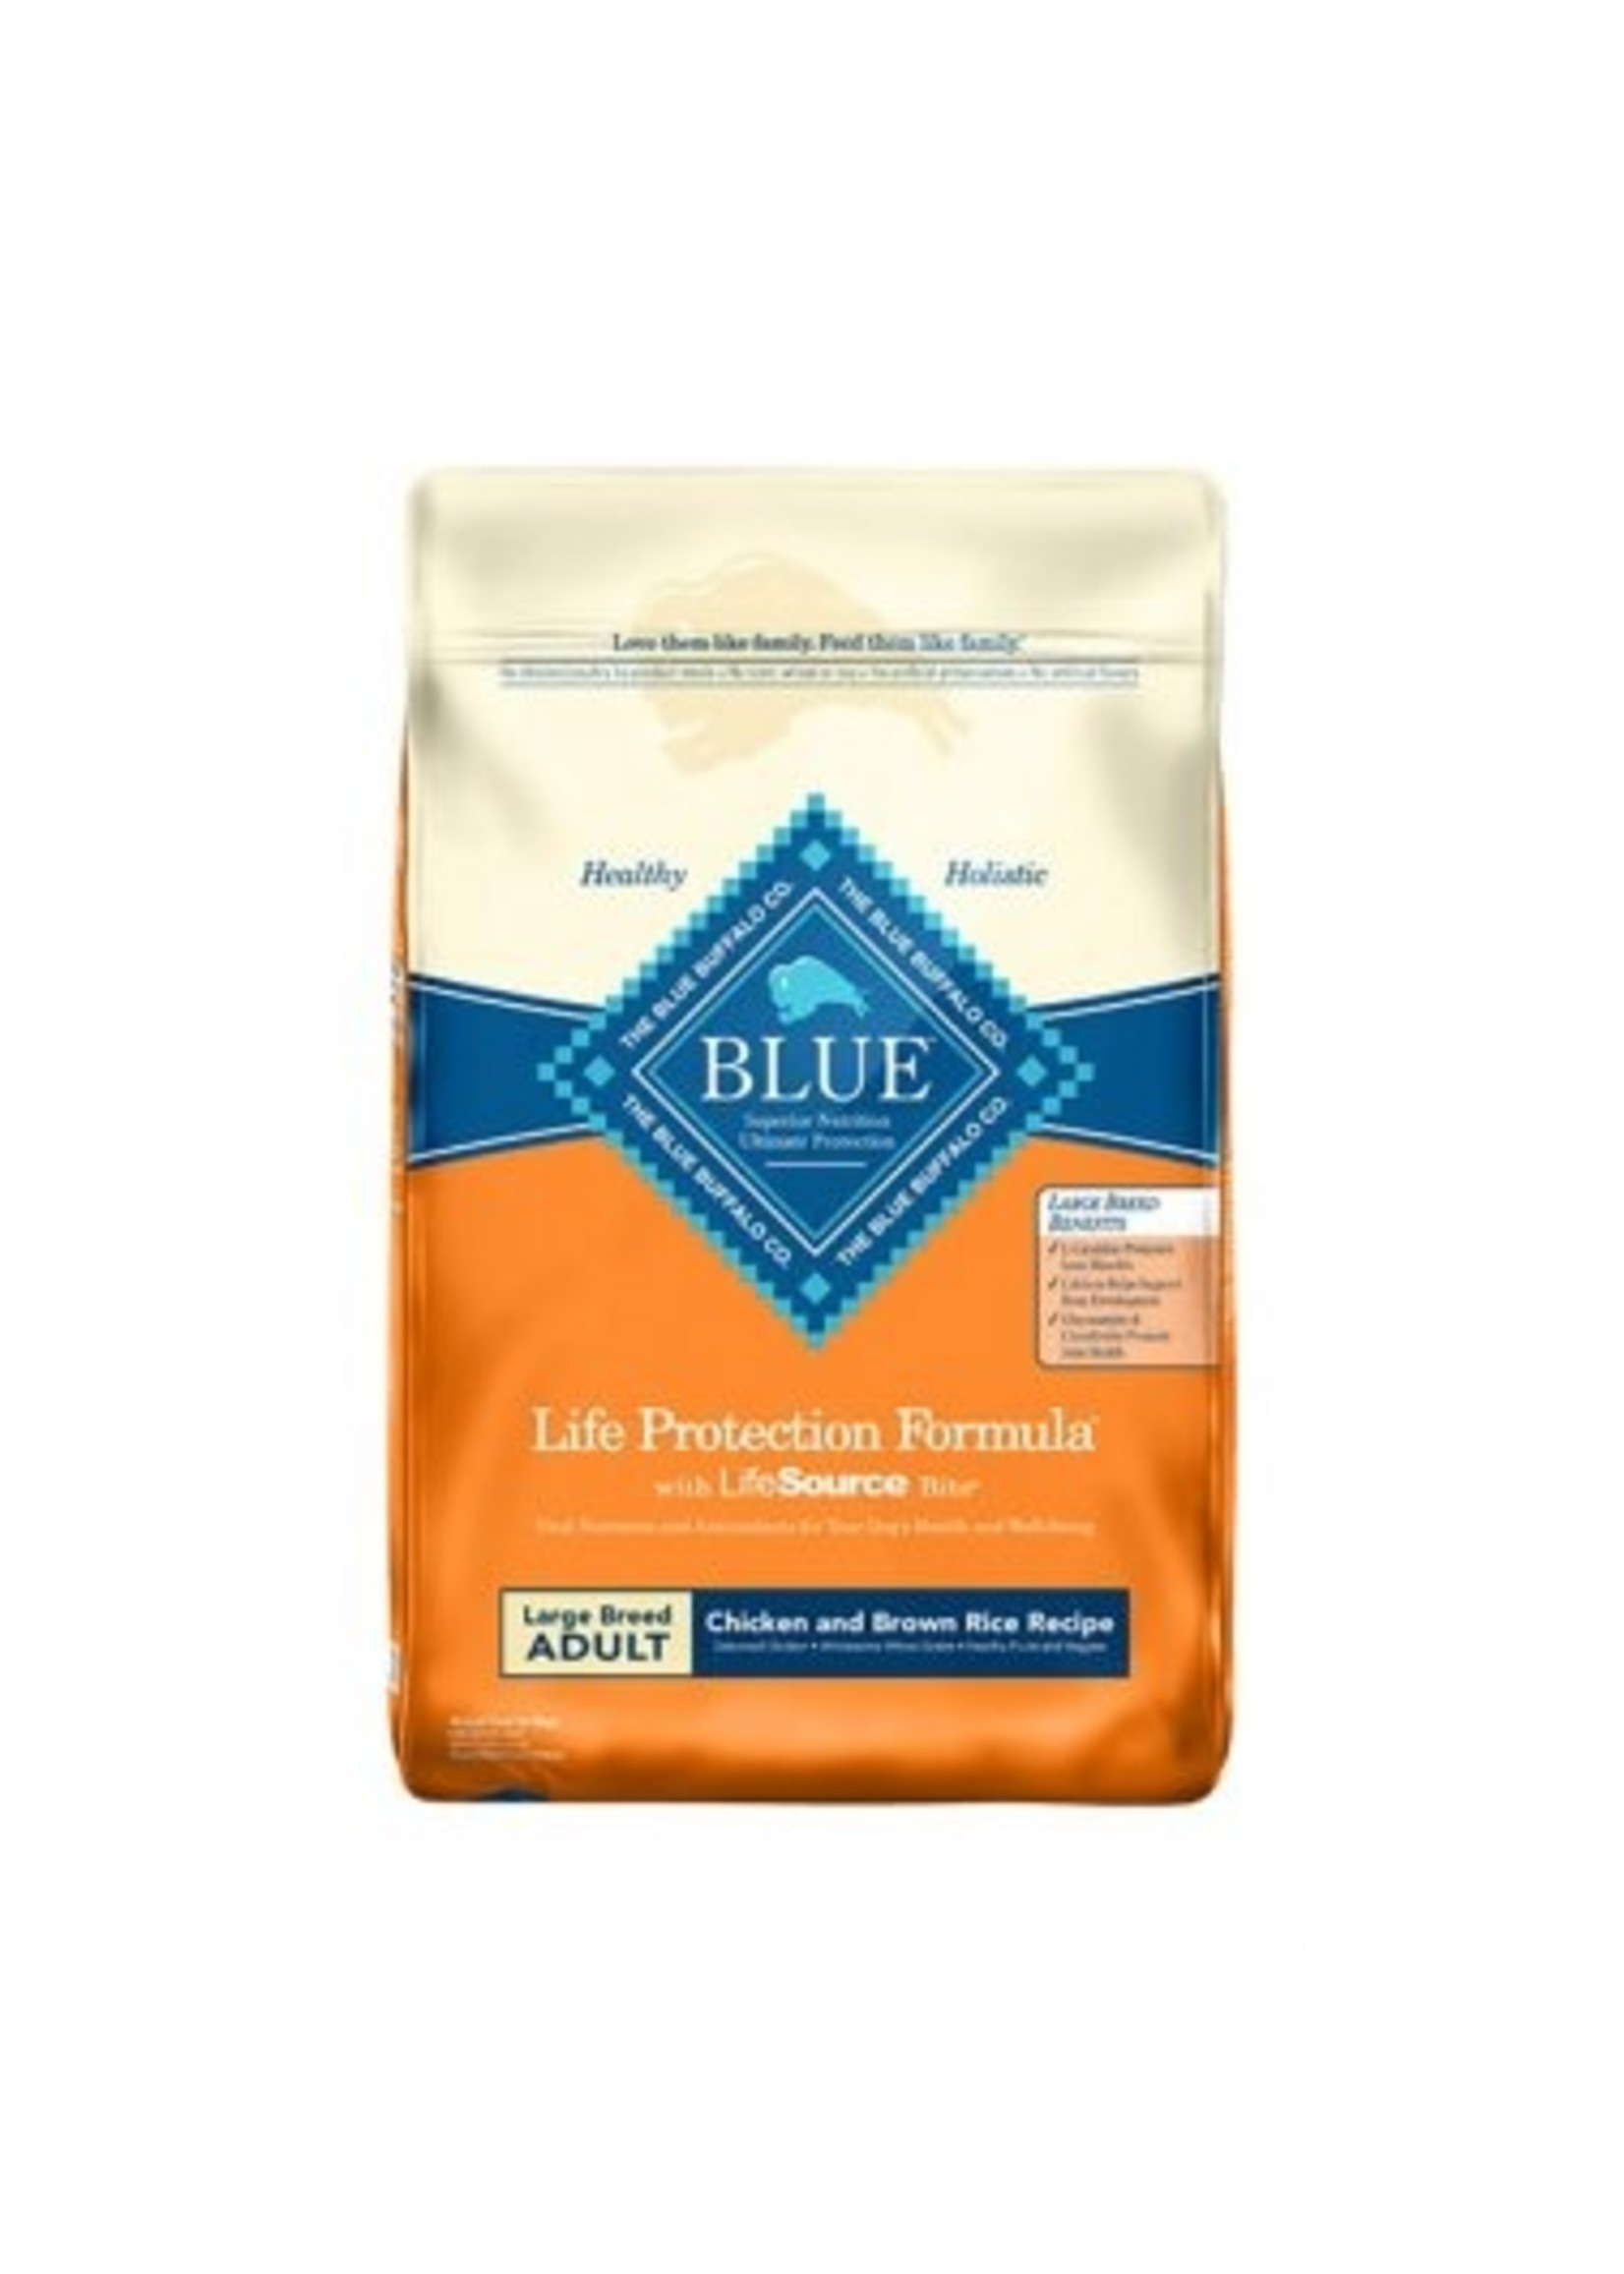 Blue Buffalo Blue Life Protection Formula® Chicken & Brown Rice Recipe Large Breed Adult Dog Food 15 Lbs